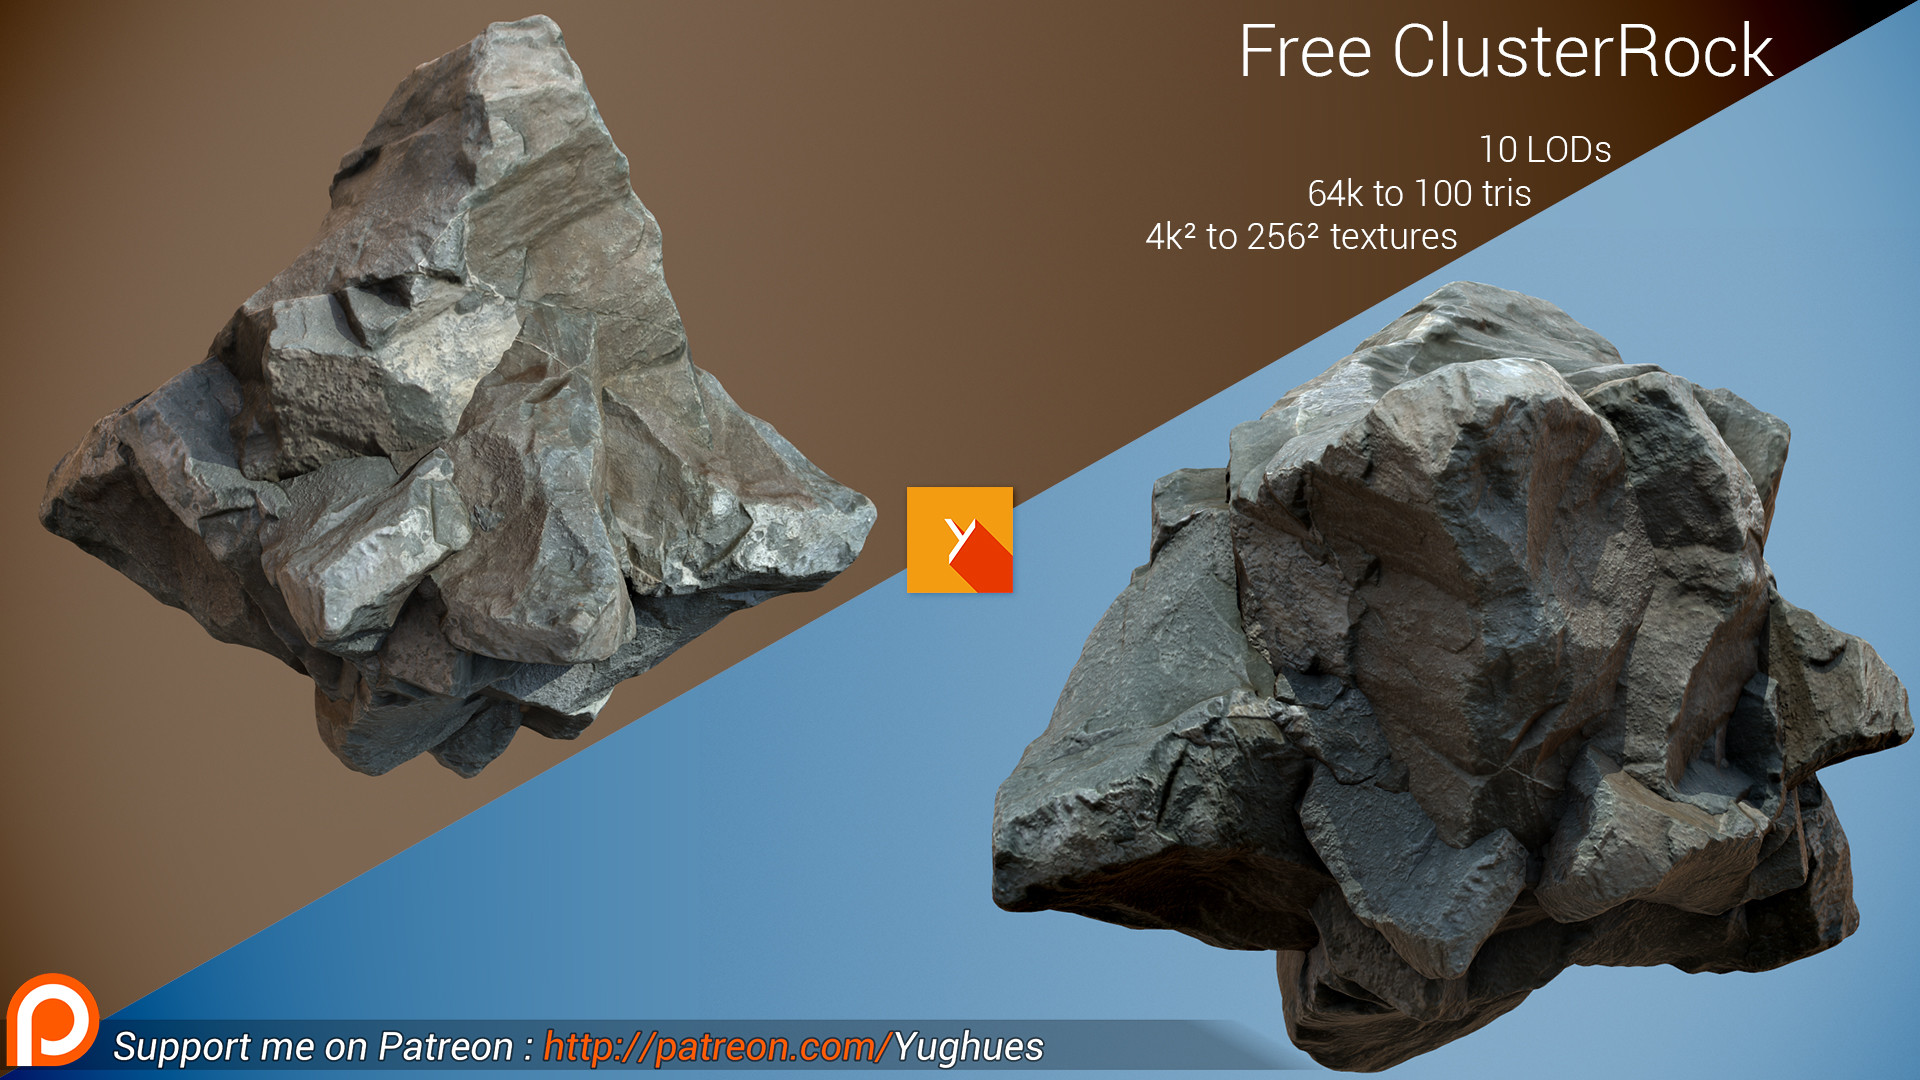 Hugues muller free photogrammetric rock cluster by nobiax db8g2zq